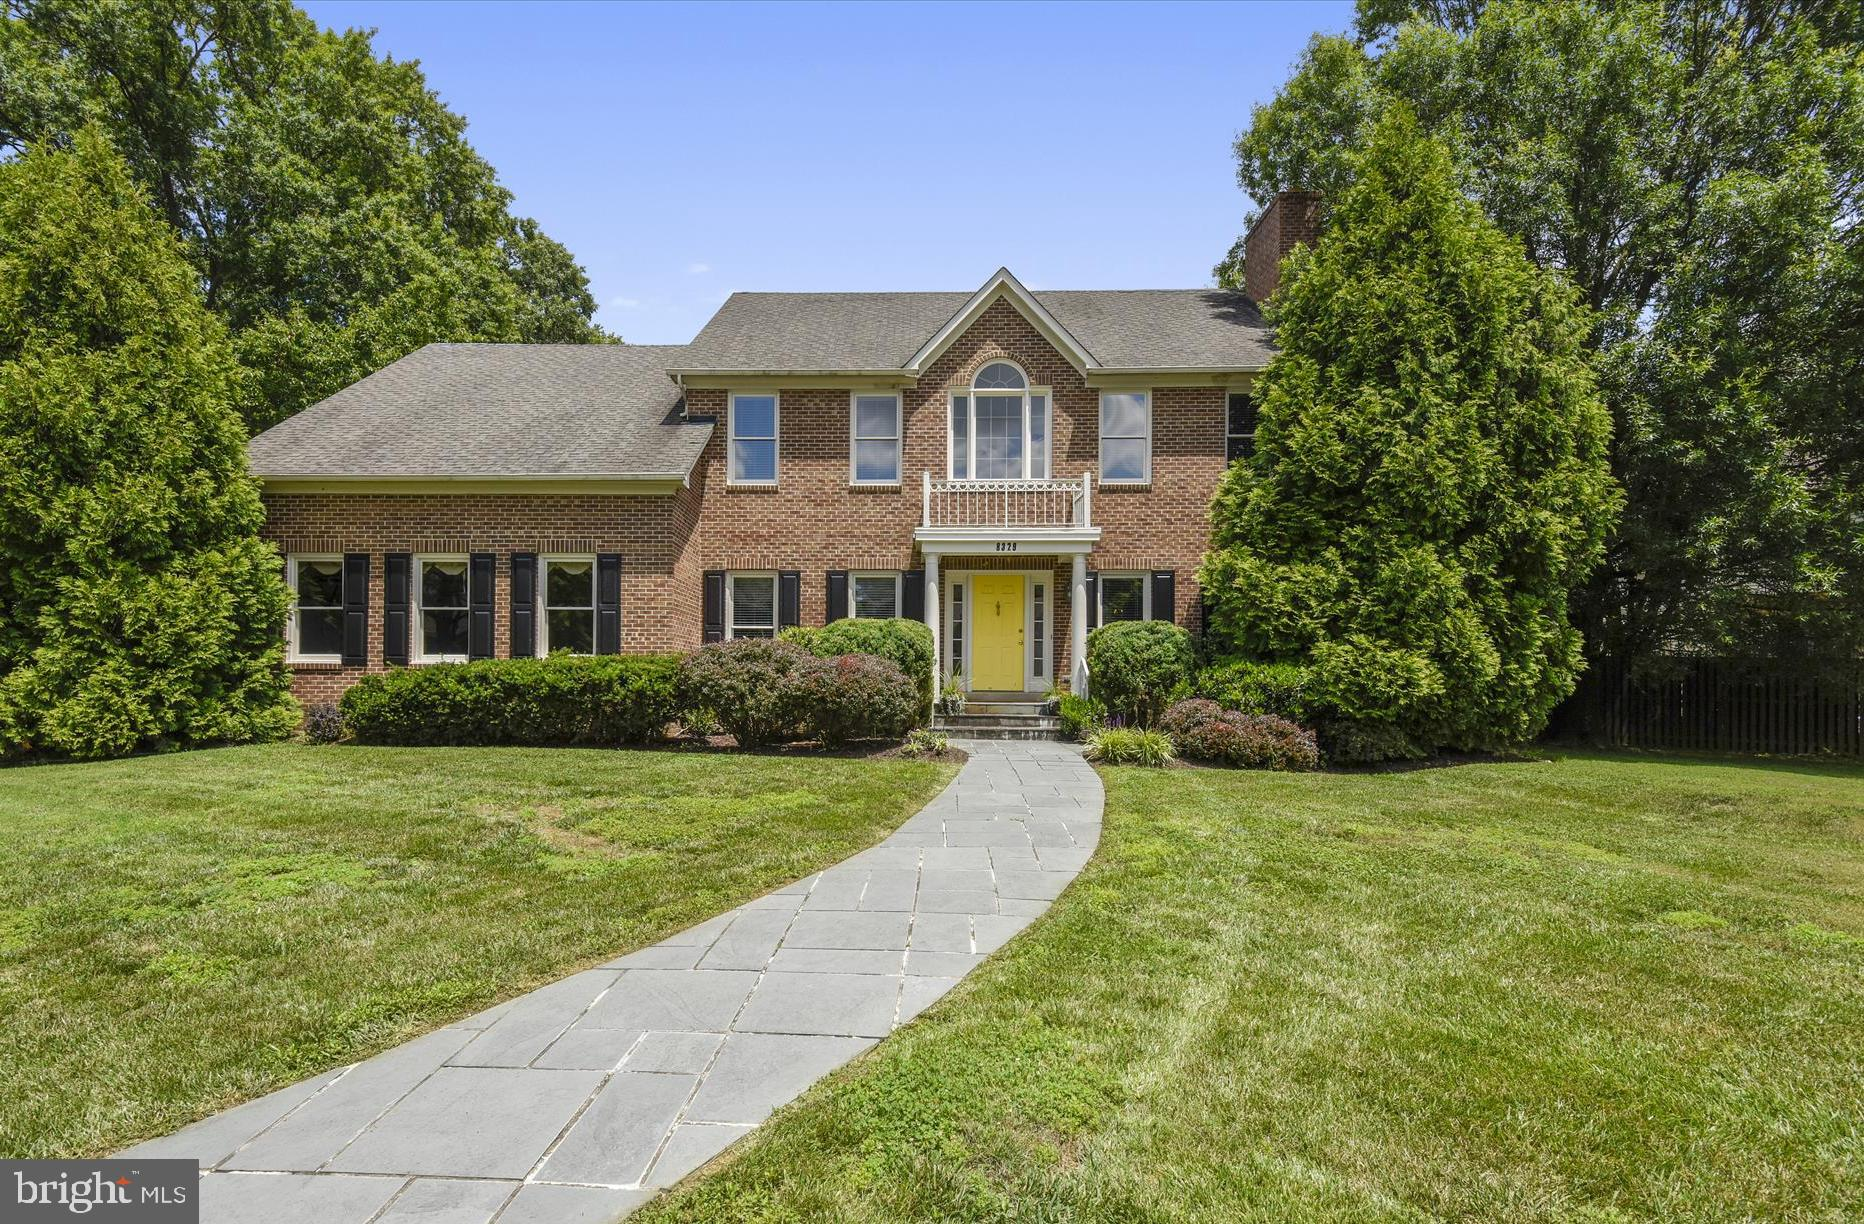 PRICE IMPROVEMENT - Located in the sought after community of Fort Hunt, 8329 Woodacre Street, Alexandria, VA 22308 was built for entertaining.  You are greeted by the welcoming two-story foyer which features a beautiful curved staircase.  The main floor features a den/study, powder room, hardwood floors, living room with wood burning fireplace, and formal dining room.  The family room, kitchen, and eating area offers a large open floor plan with cathedral ceilings and another wood burning fireplace located in the family room.  You have easy access to the pool and patio areas; perfect for enjoying the summer and entertaining.  Laundry is conveniently located off the kitchen, making it easy to multi-task.  Upstairs greets you with a large master suite which includes a sitting area, walk-in closet, whirlpool tub, and separate shower.  Three additional bedrooms and one full bath complete this level. New carpet throughout this level.  The fully finished basement, with new carpet, lends itself perfectly for a pool table or movie night.  Two other large rooms are ideal for a craft room or media room.  Each includes a good sized closet.  A full bath and utility room round out this area.  The oversized garage provides plenty of storage for tools and pool equipment.  The central location makes commuting to work easy in all directions.  Take the GW Parkway to Old Town, DC and points north, or head south to Fort Belvoir, Lorton, and Quantico.  Closest Metro stations are Huntington and Franconia/Springfield.  Price reflects condition.